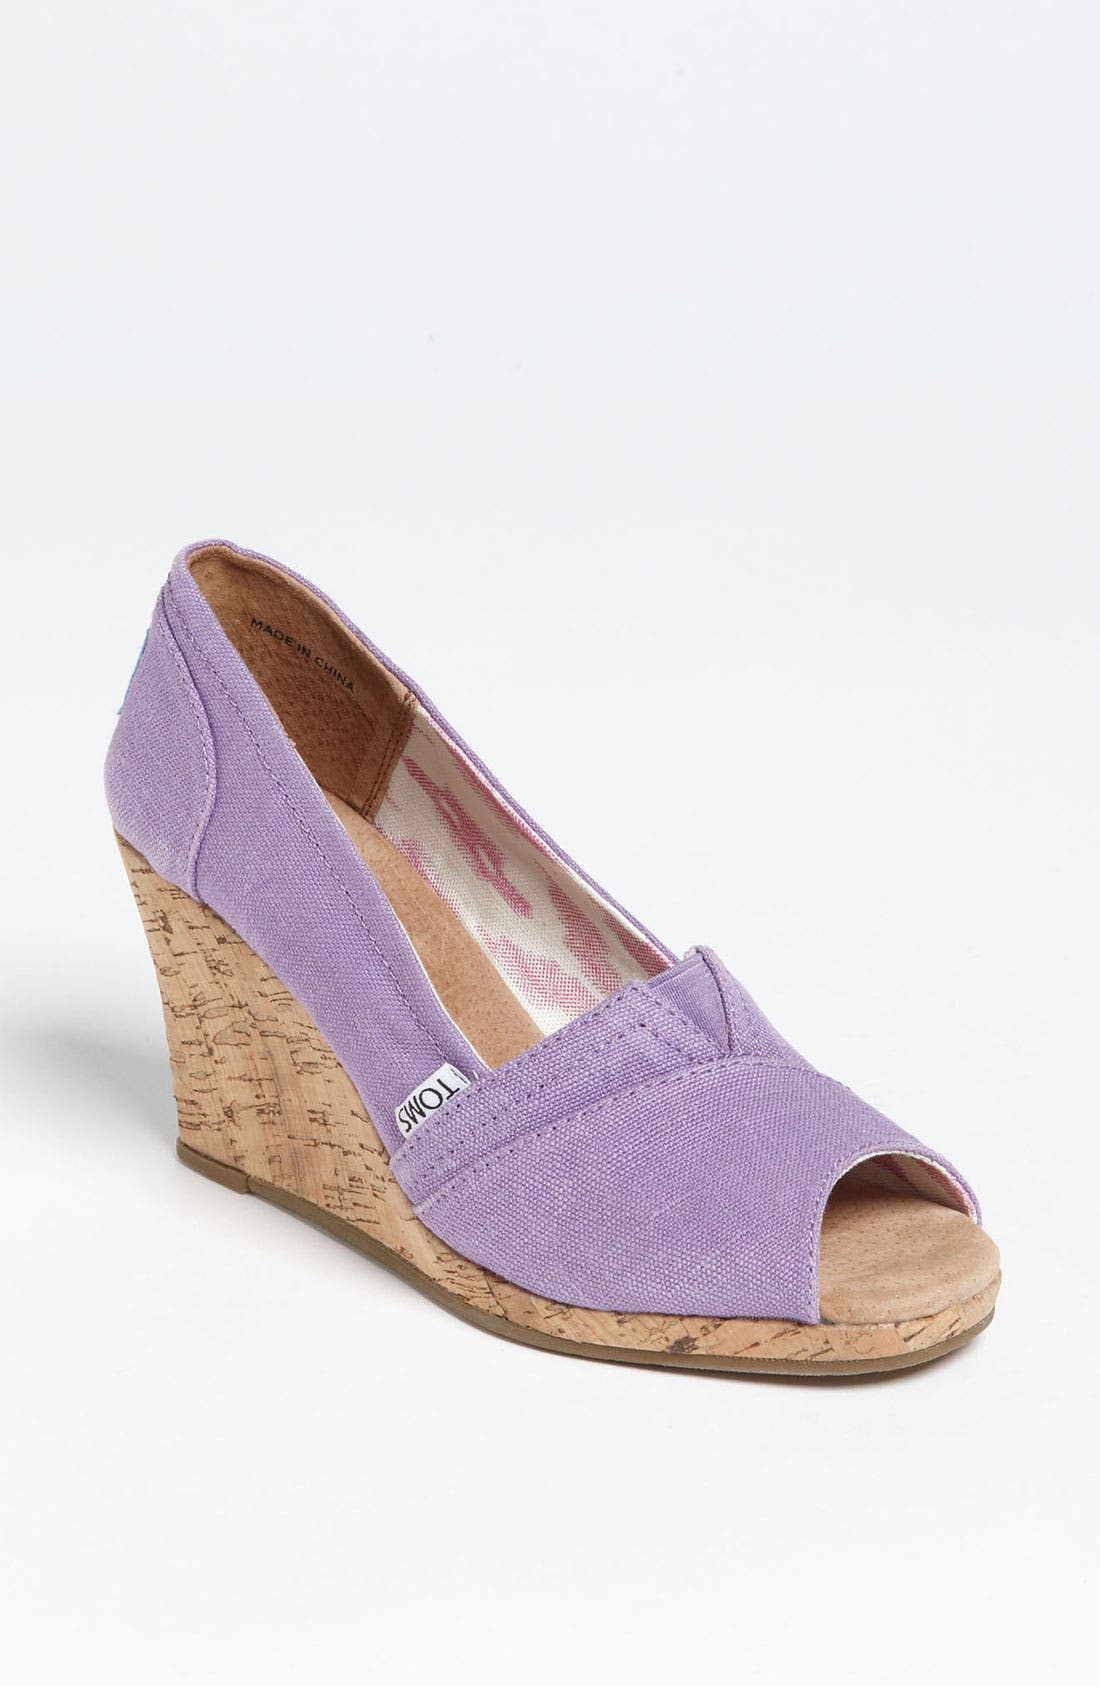 Main Image - TOMS Hemp Wedge